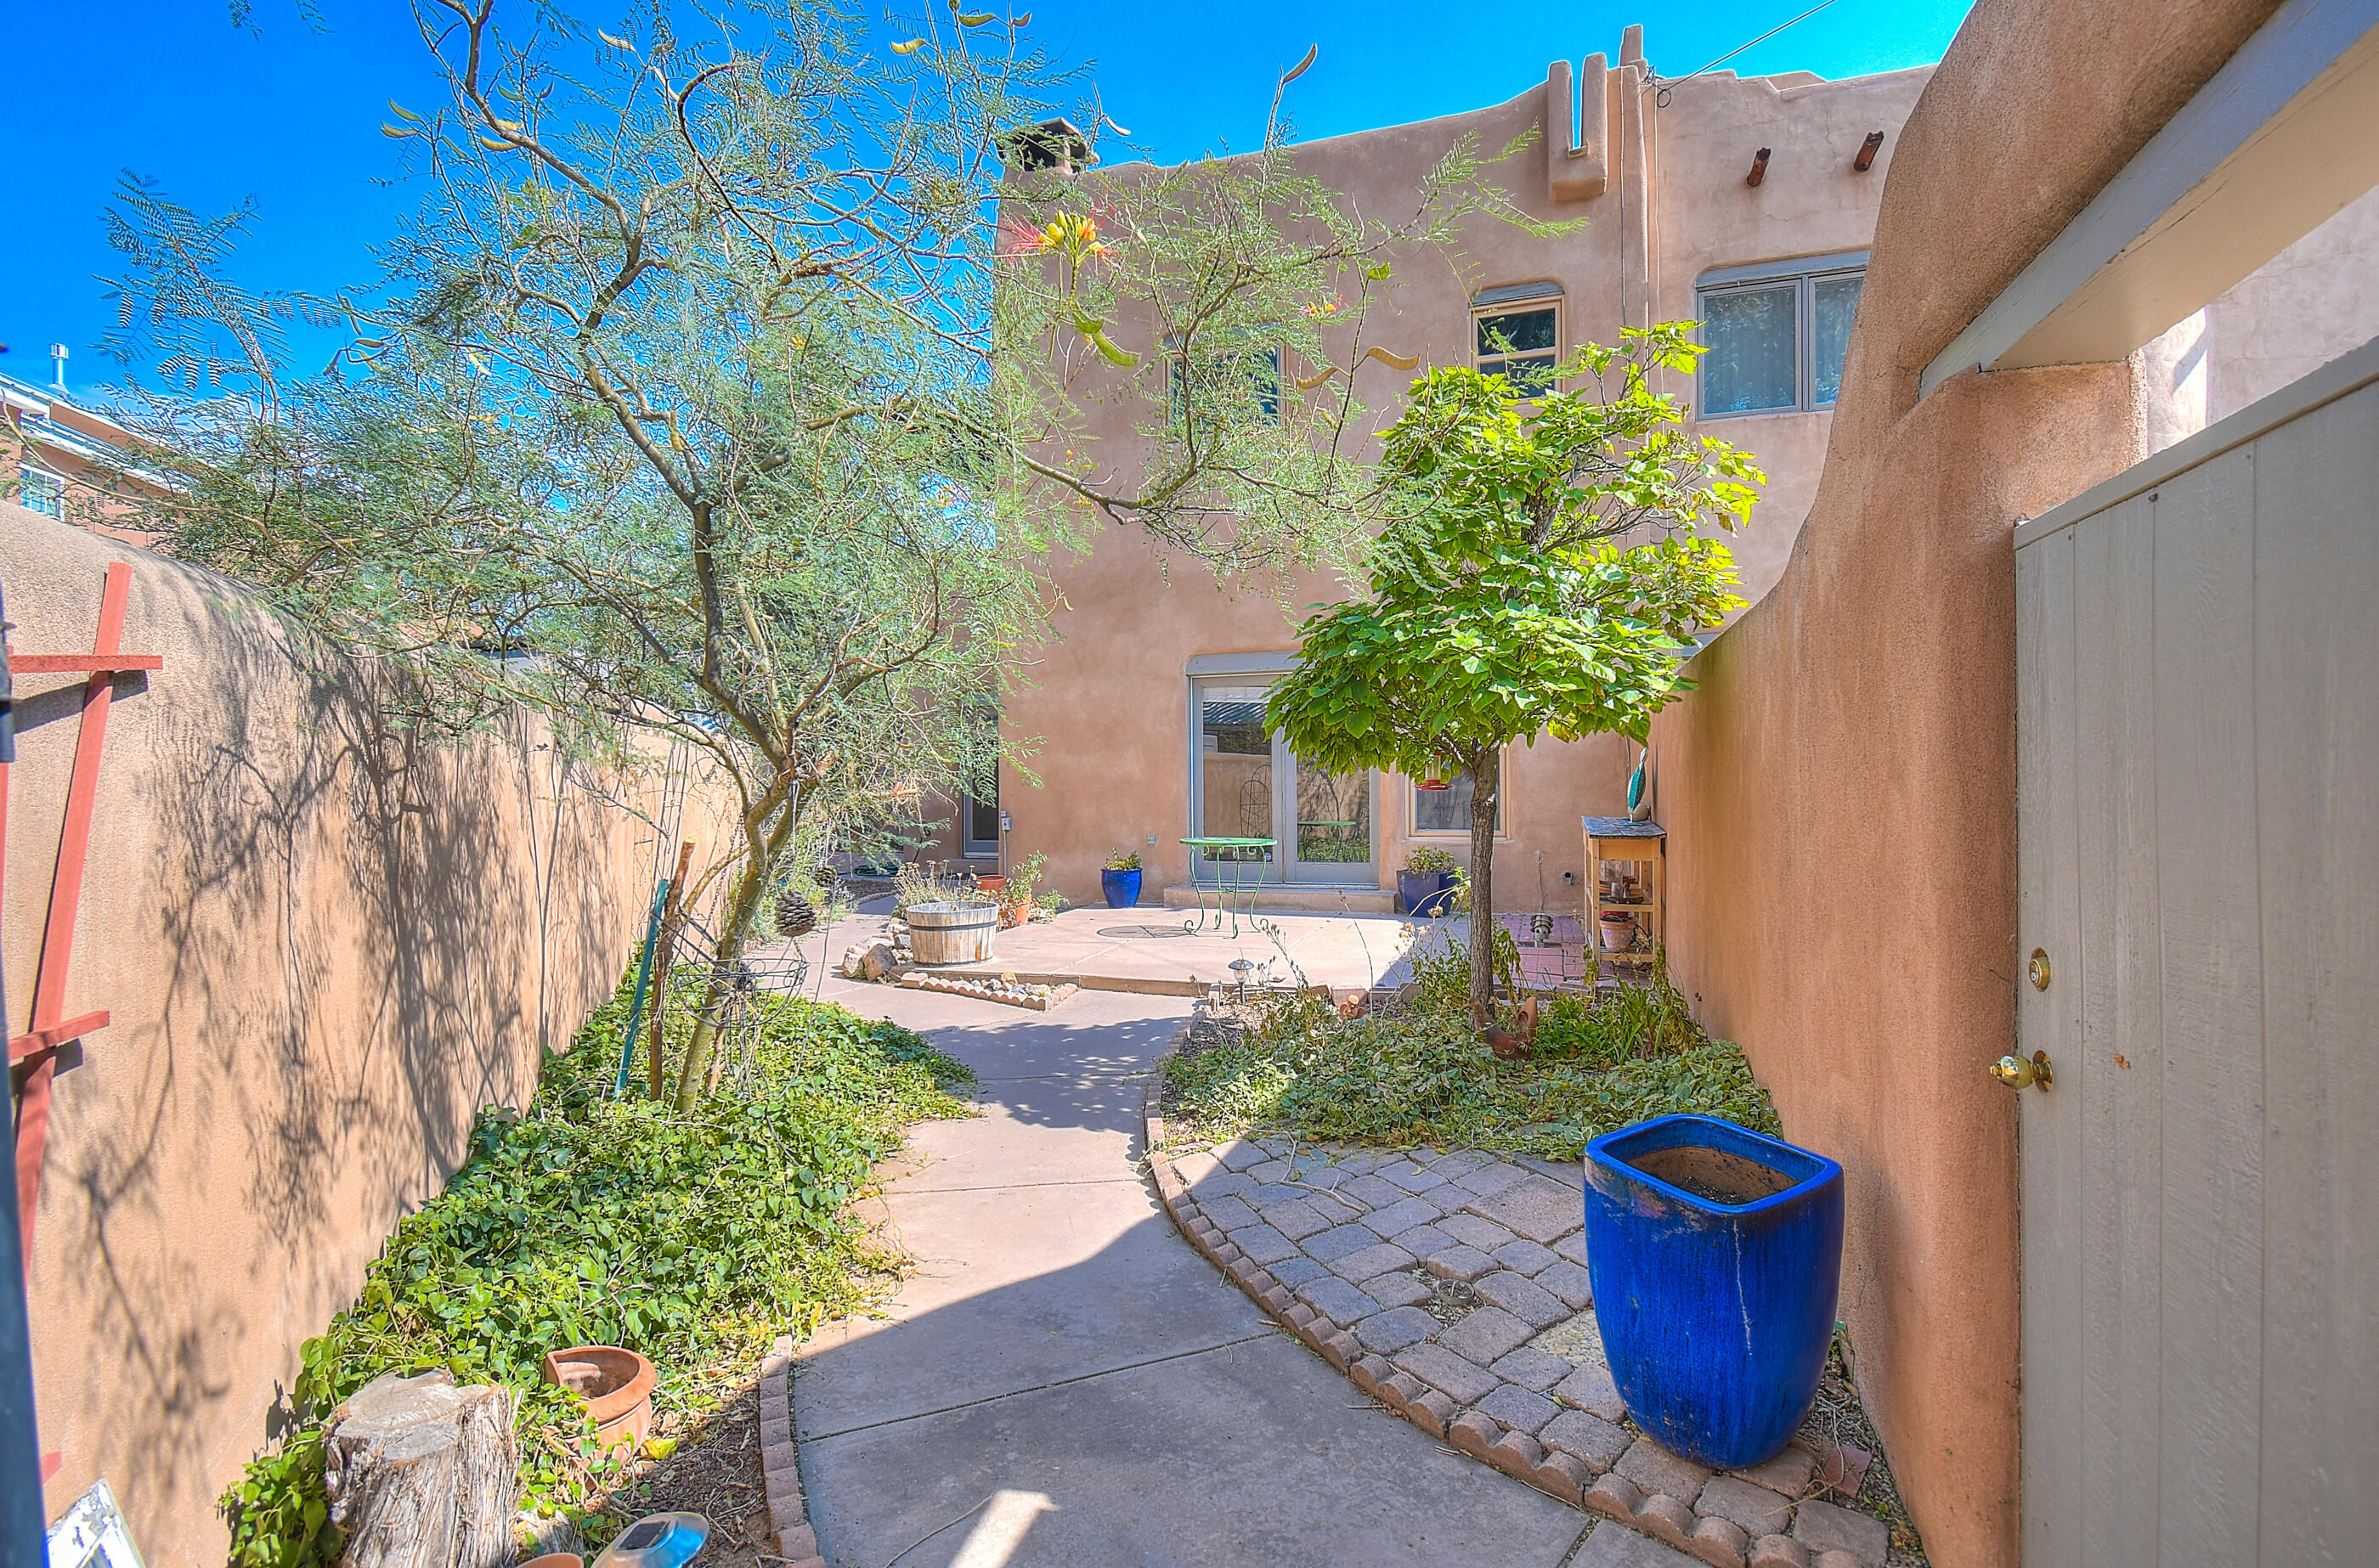 This unbelievable Old Town location is close to the bosque trails, galleries, Nature Center, restaurants, & museums. Beautiful, Private courtyard entry & french doors to garden. Open floorplan with brick floors, 2 kiva fireplaces. Enjoy your master suite with a deck &  high ceilings, beams & korbels. Don't miss out on this one!